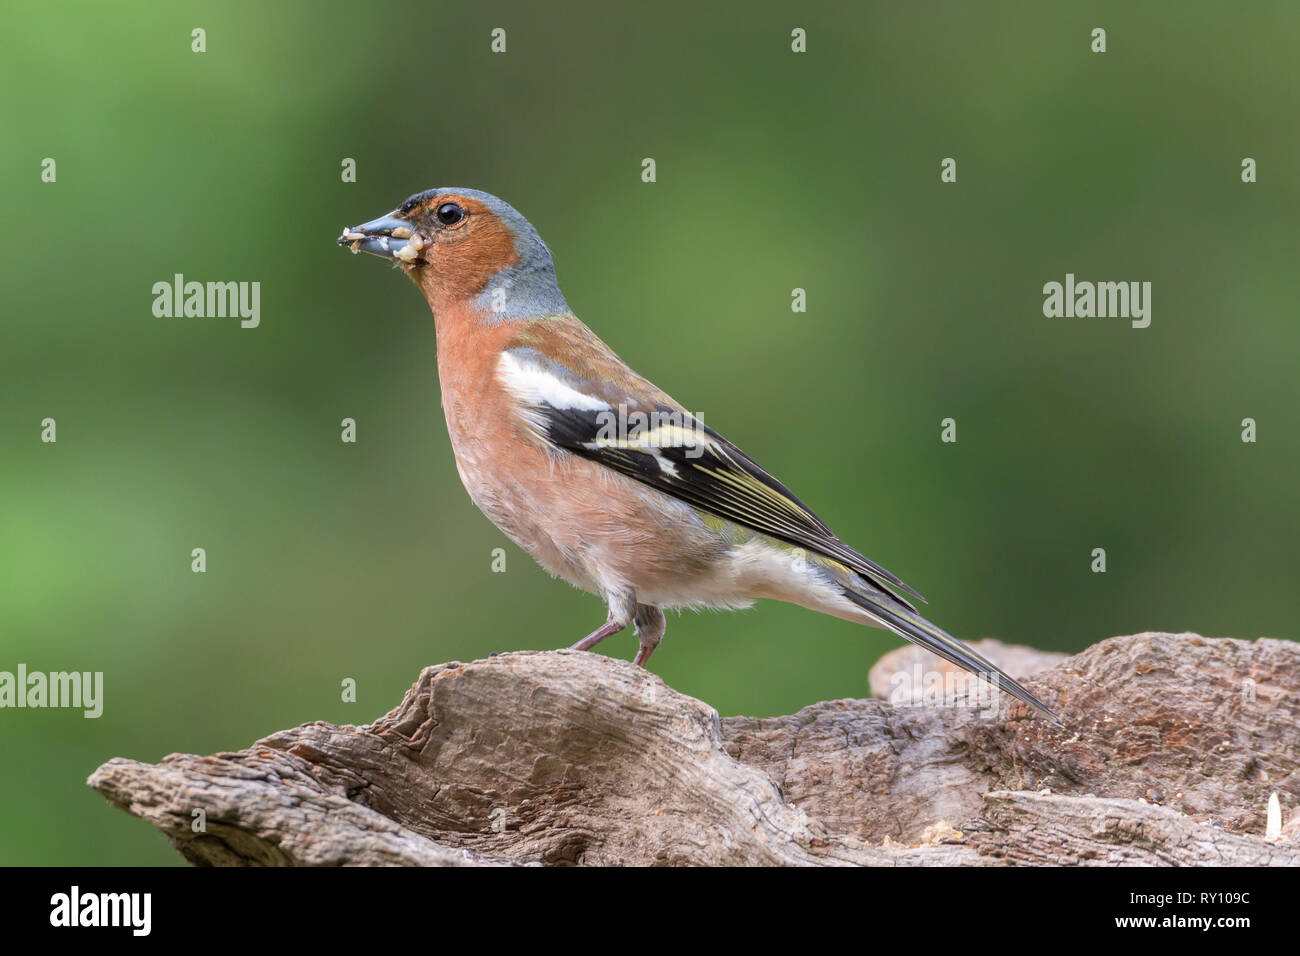 Male Common Chaffinch, Lower Saxony, Germany, (Fringilla coelebs) - Stock Image